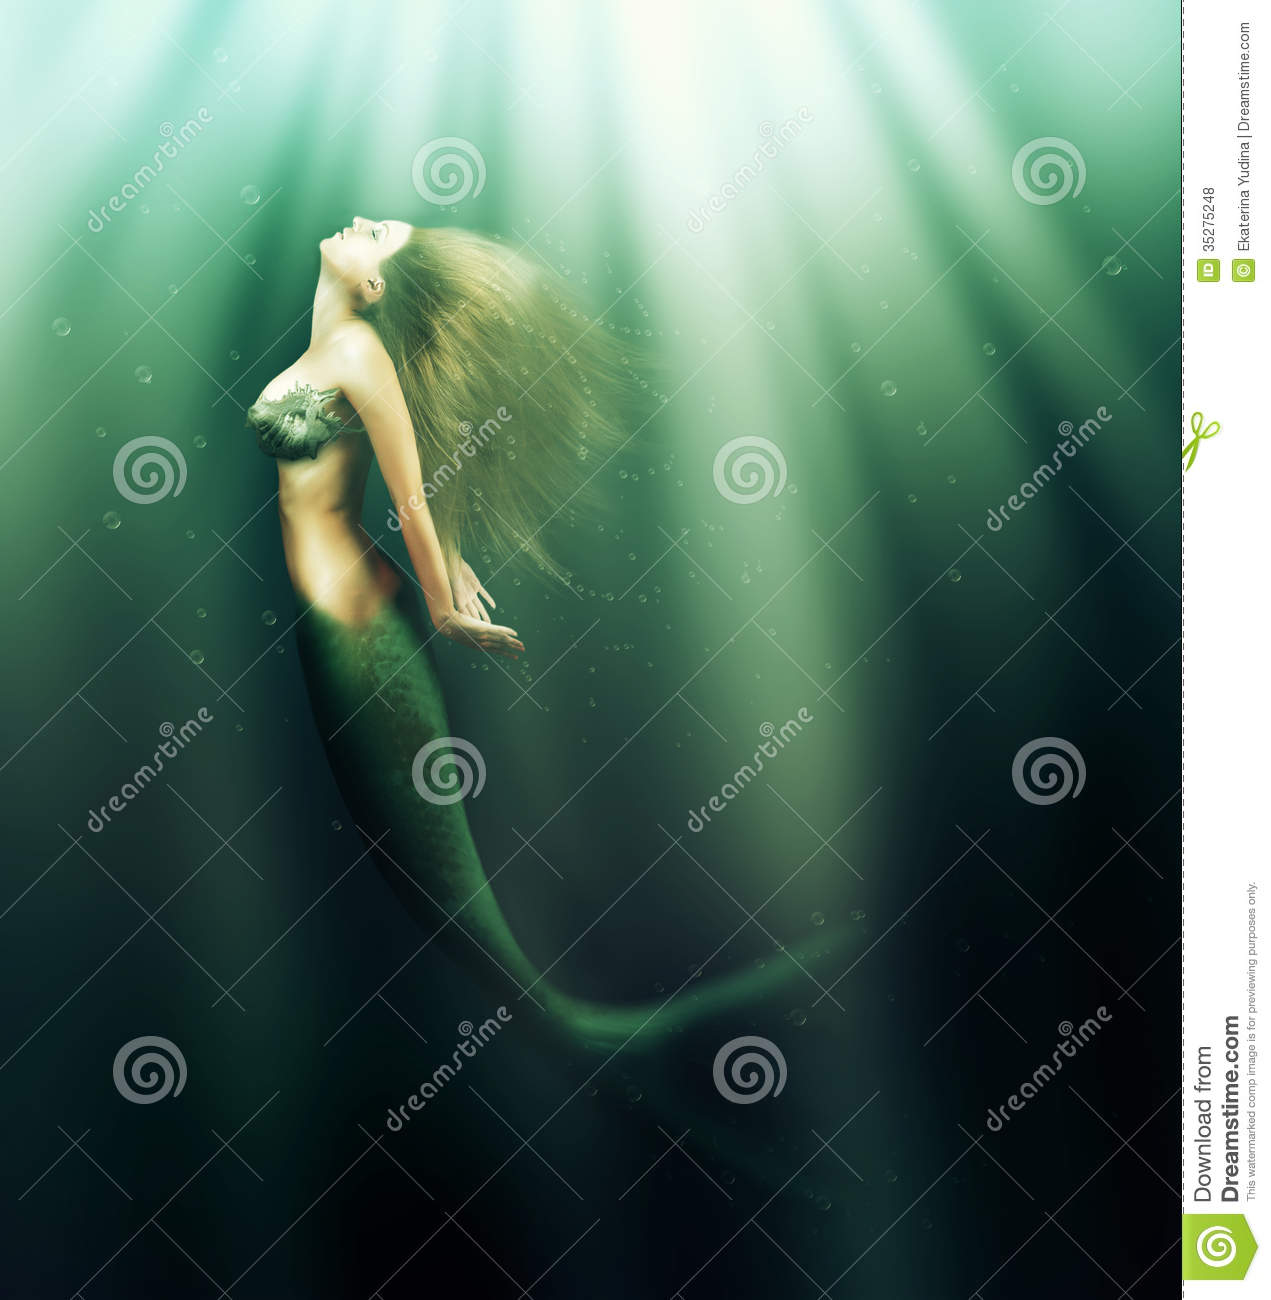 mermaid stock photos images u0026 pictures 11 321 images